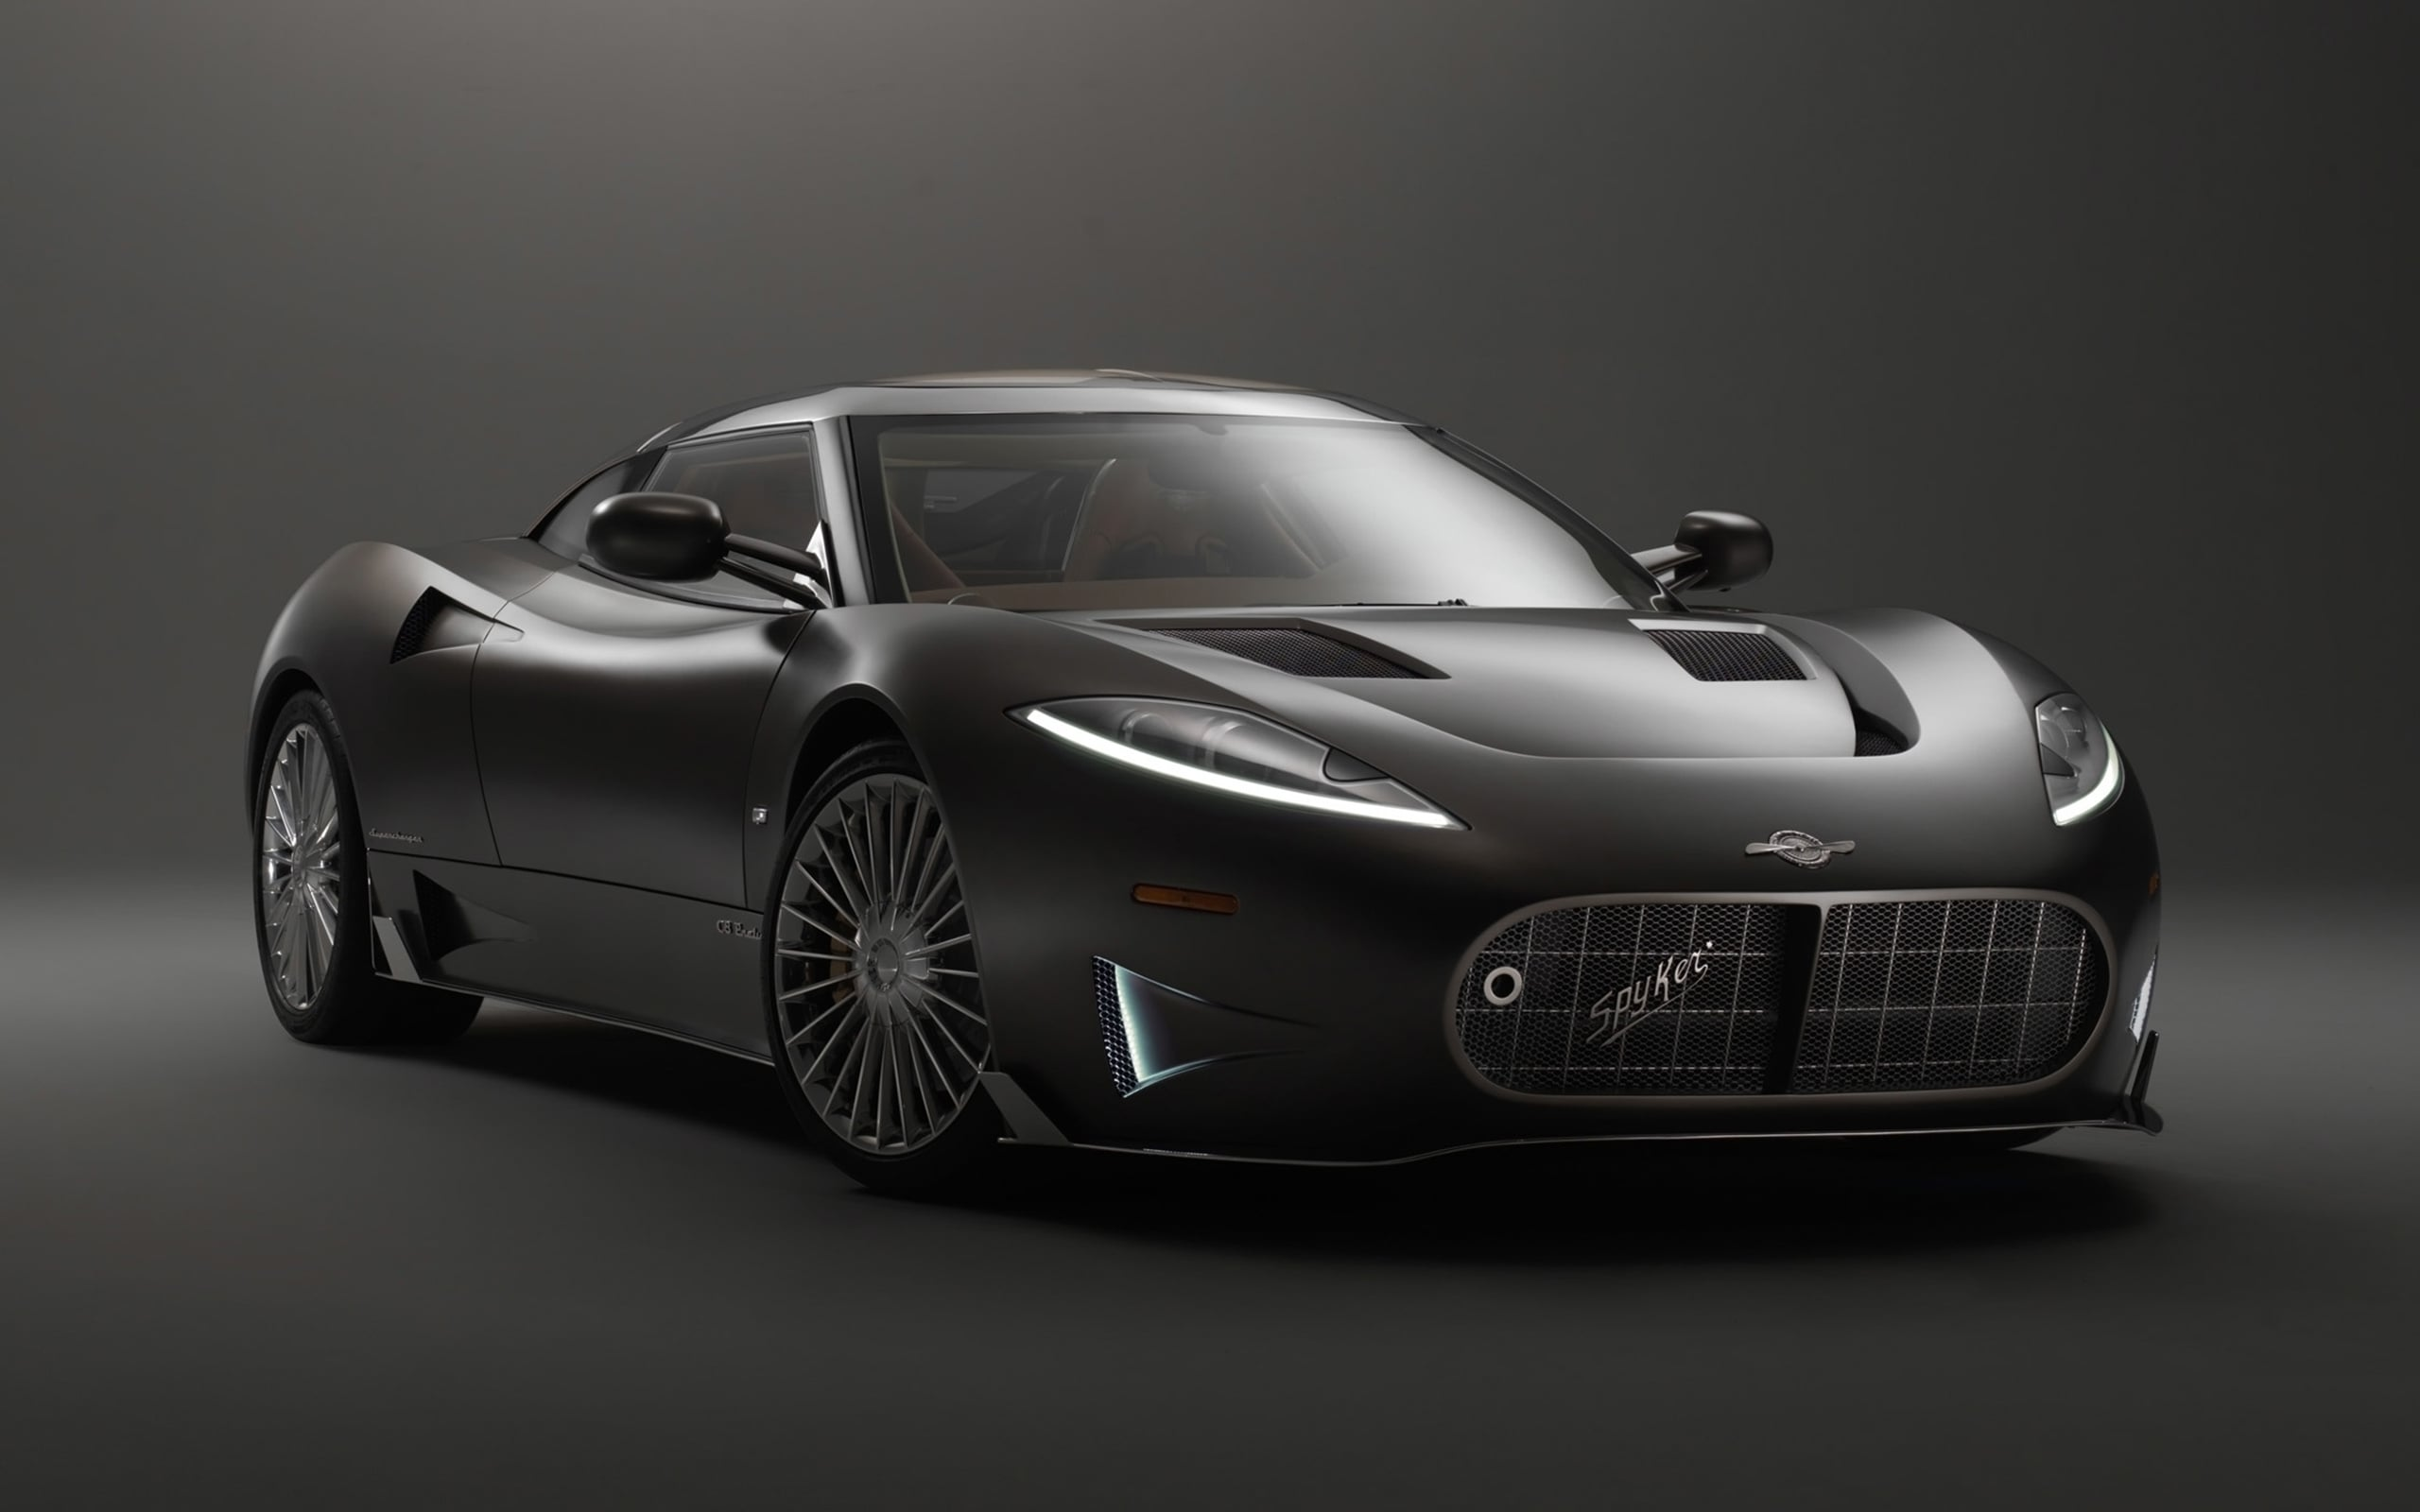 2016 Spyker C8 Preliator wallpapers